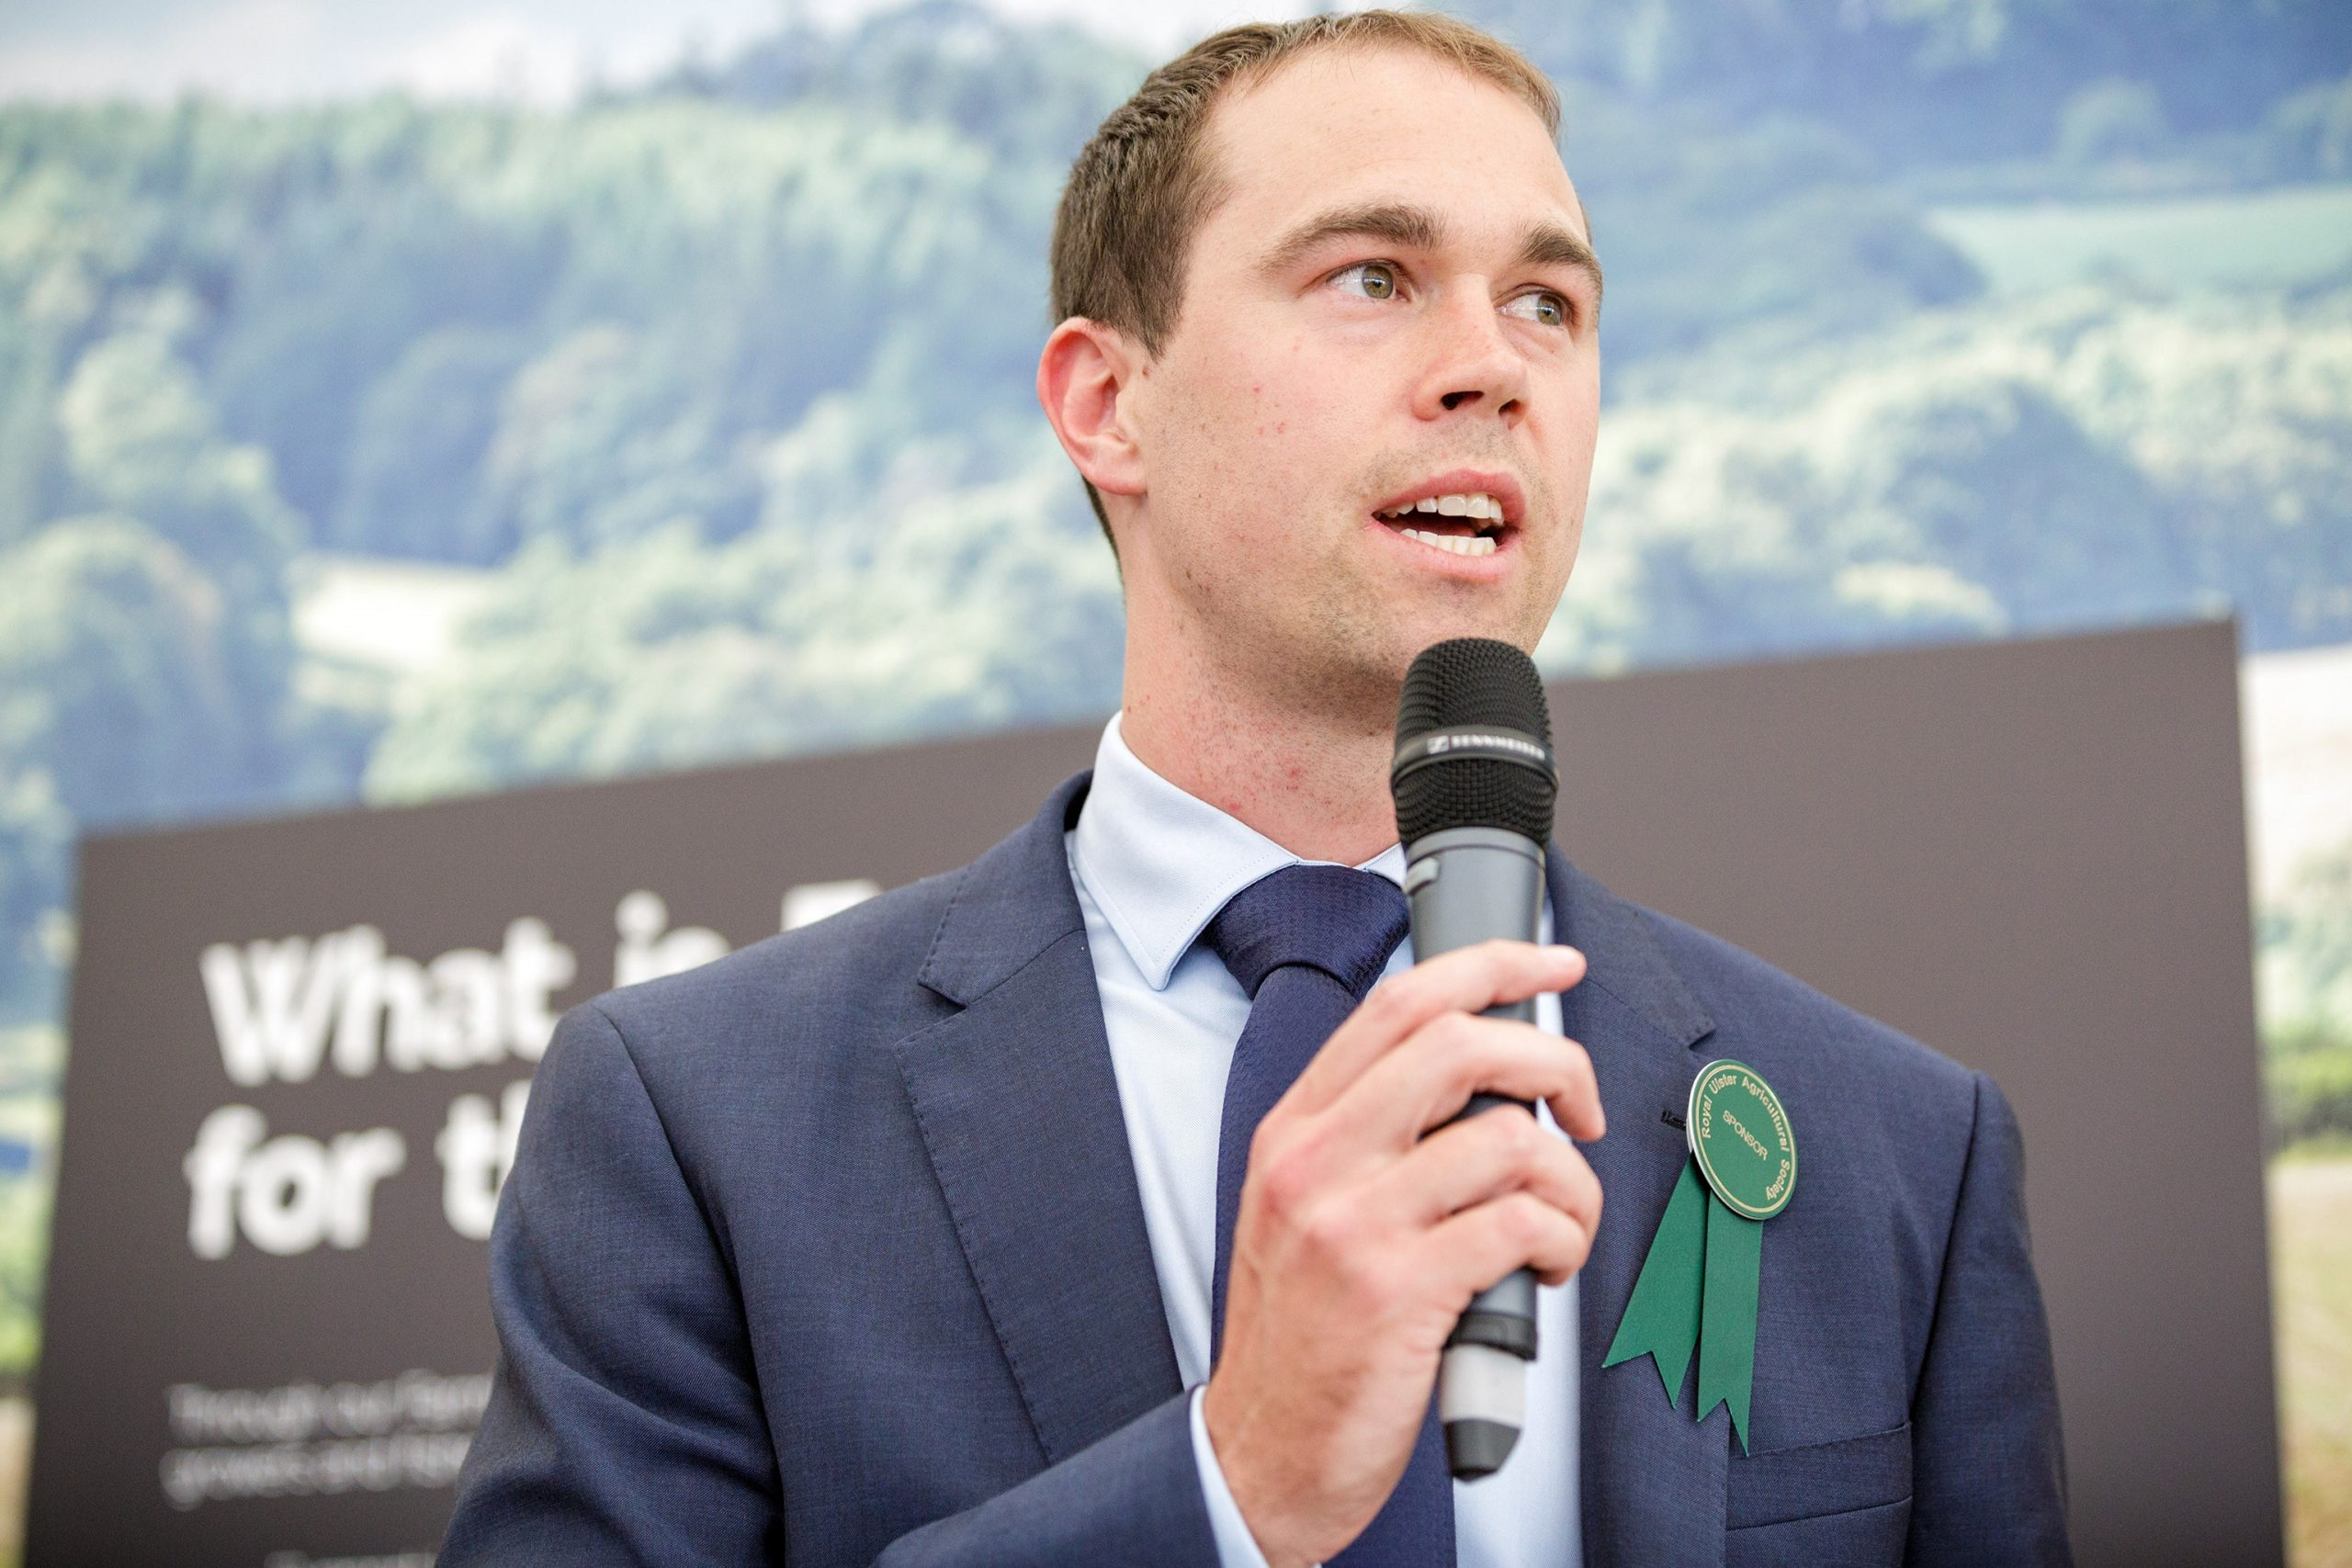 M&S showcases support for local agriculture and food at Balmoral Show